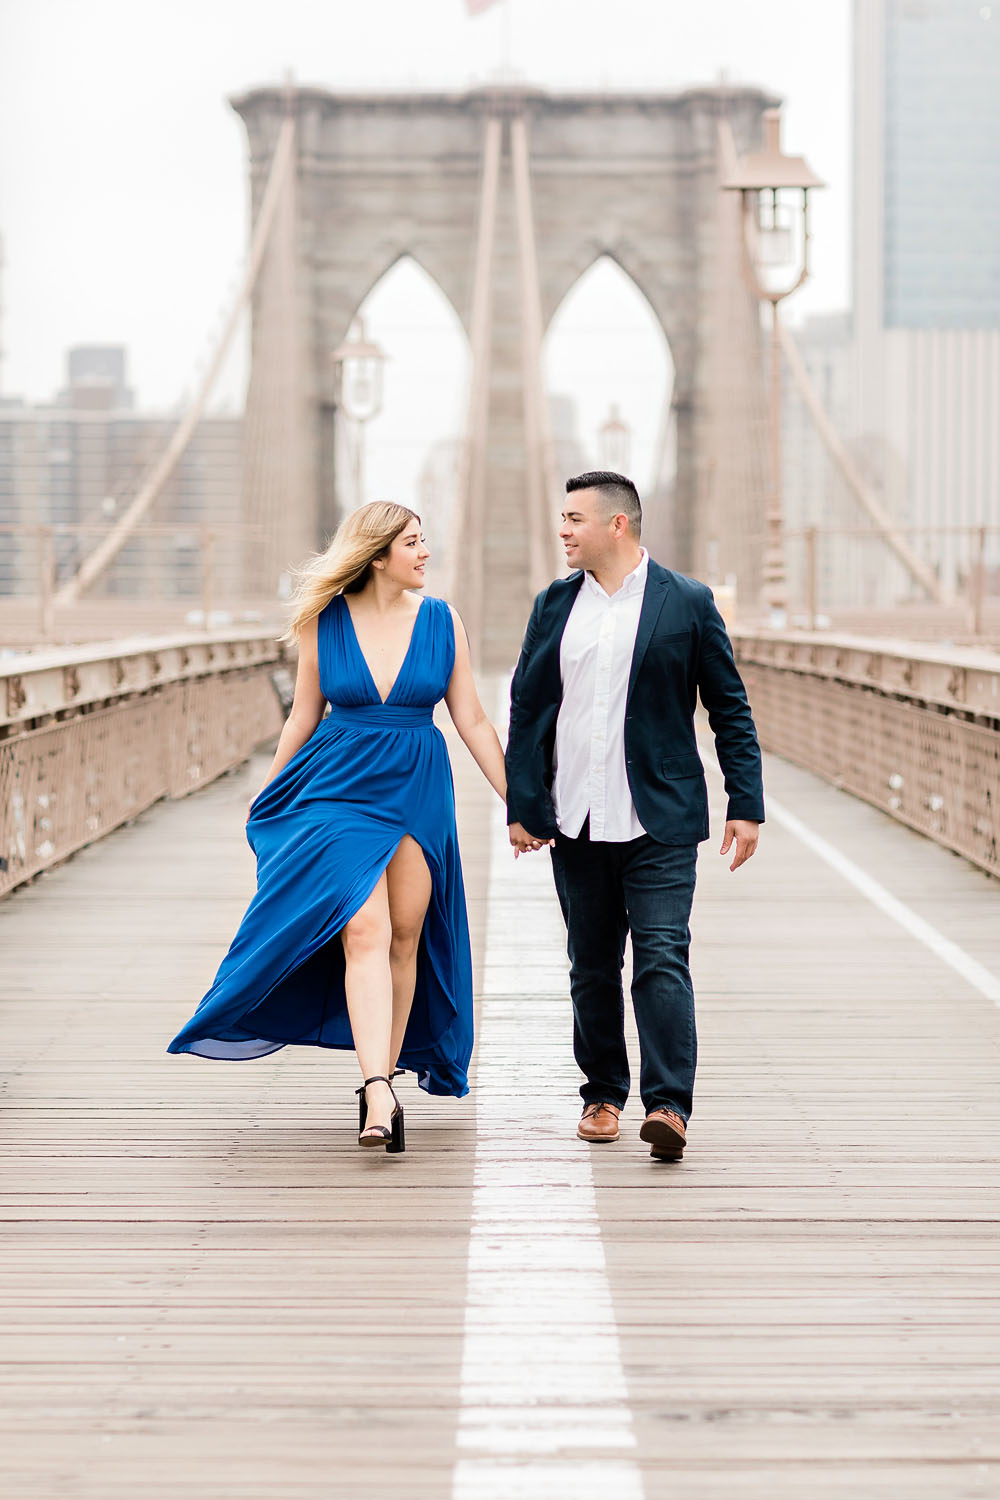 Romantic walk on the Brooklyn Bridge